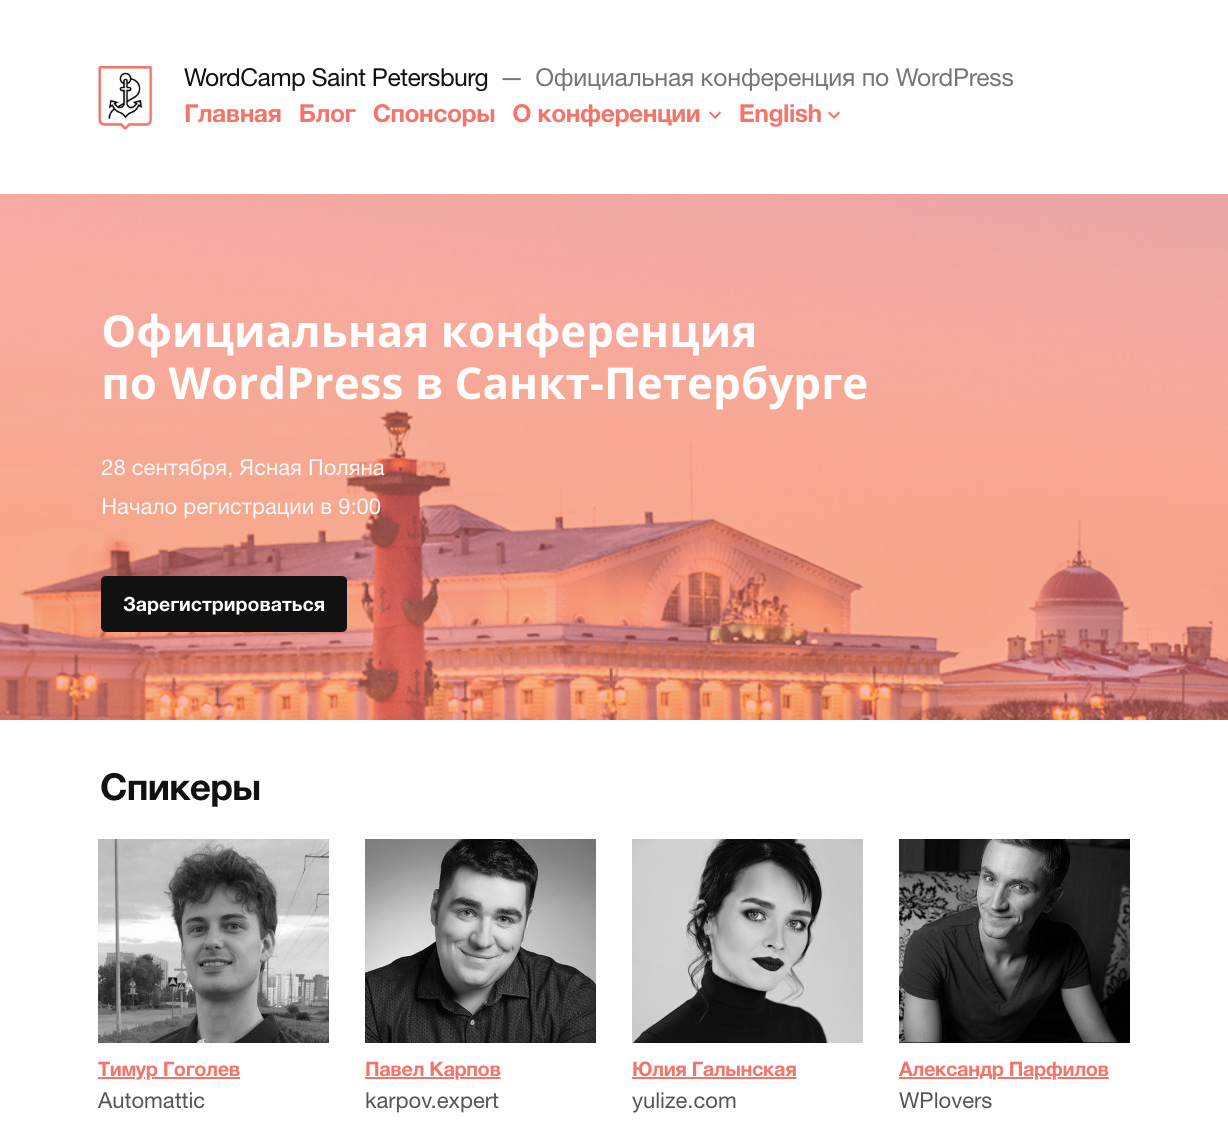 Дизайн и разработка сайта конференции WordCamp Saint Petersburg 2019 Мишей Рудрастых